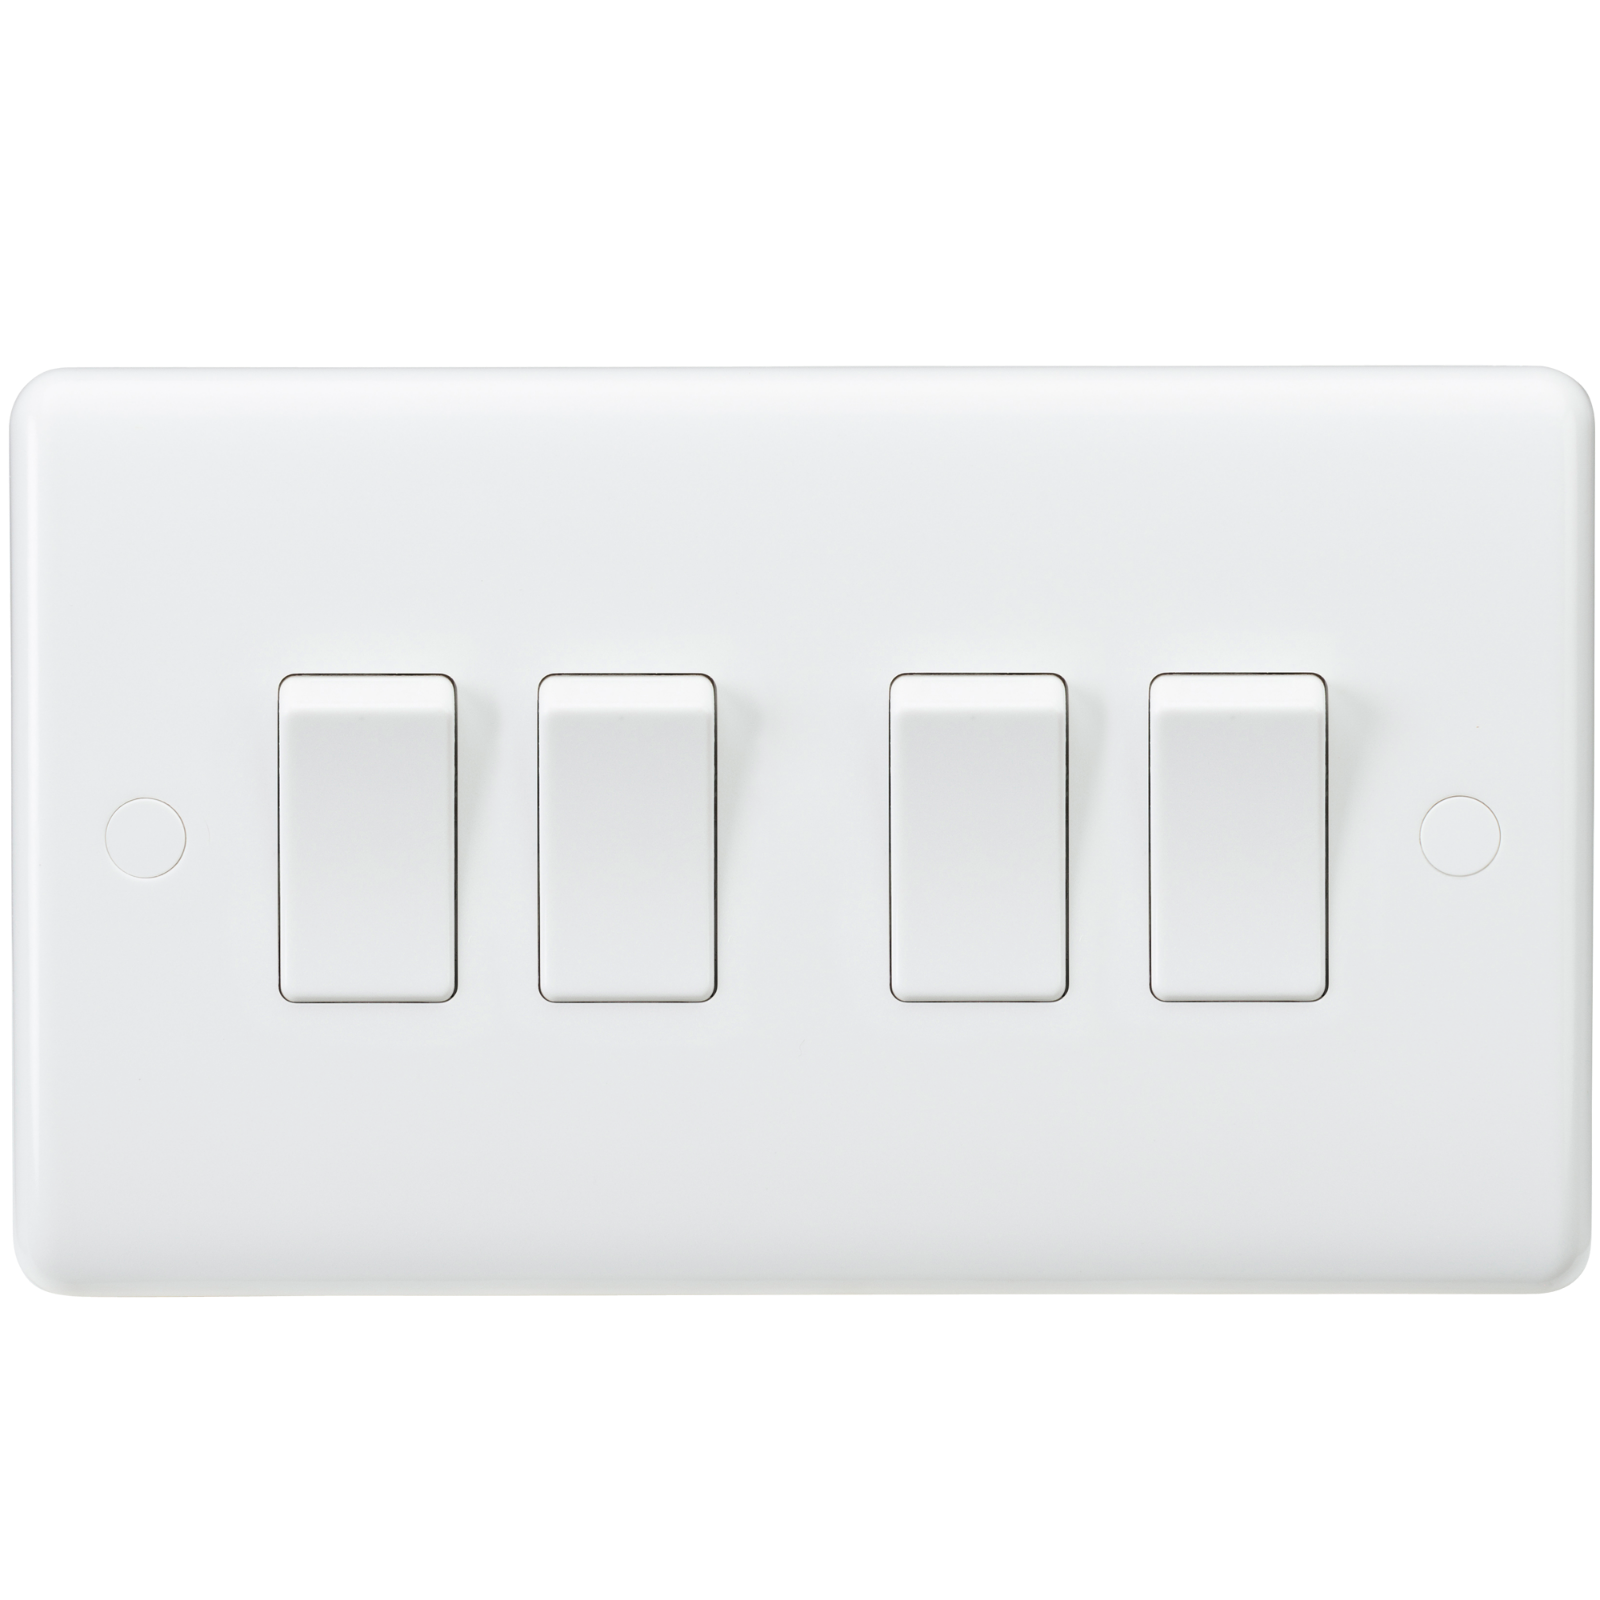 White Curved Edge Wiring Accessories Socket Switch Usb Spur Dimmer 3g 4g Filter Modules Media Modular